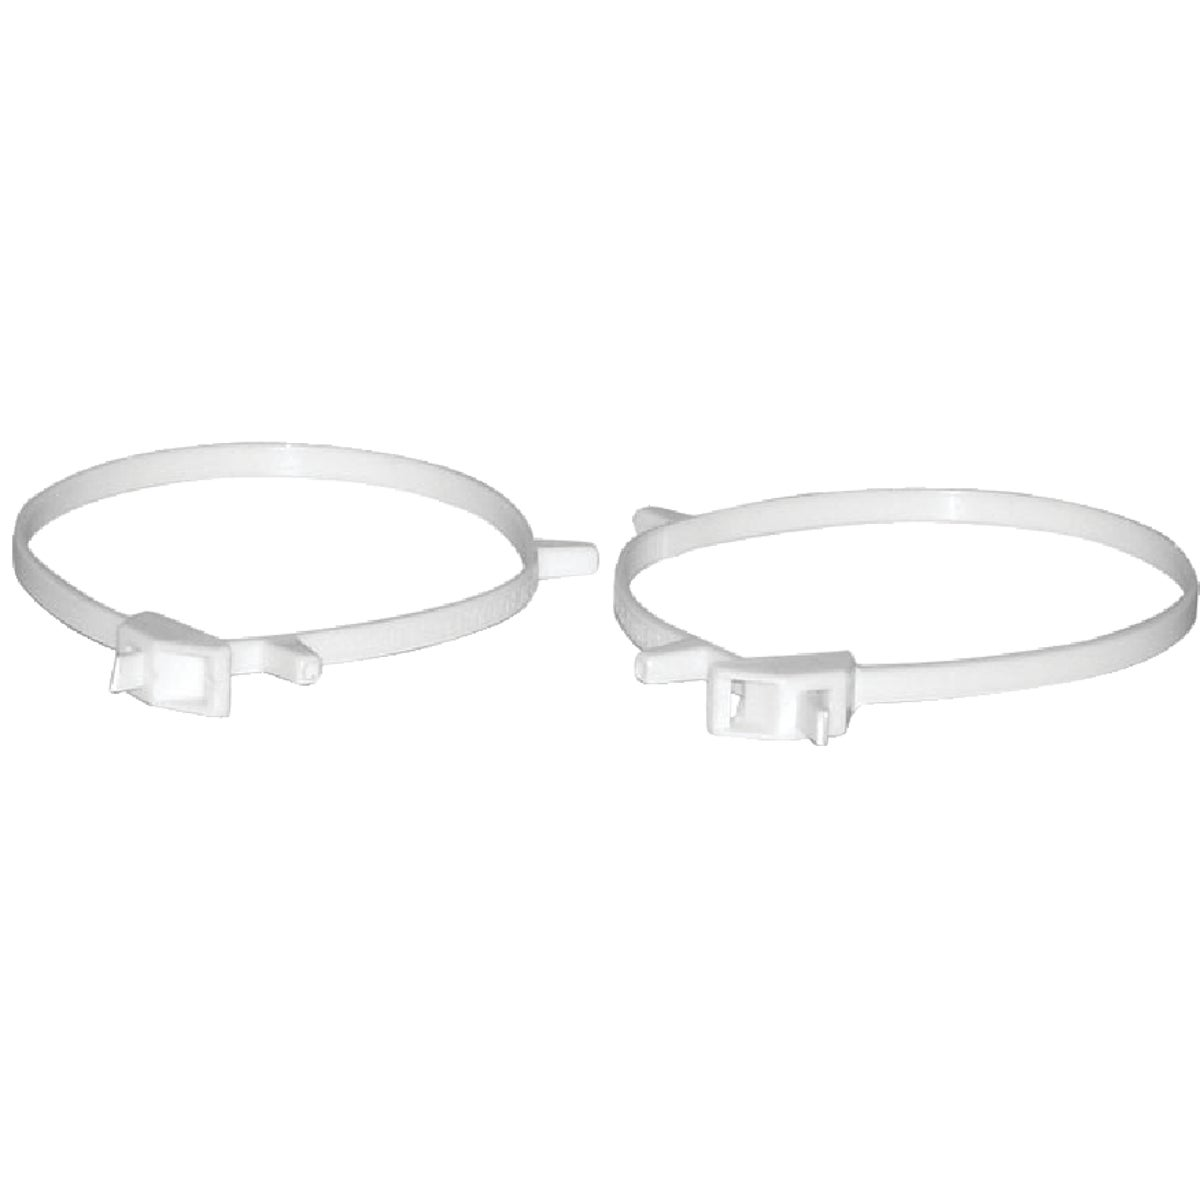 "2PK 3-4"" PLASTIC CLAMP"